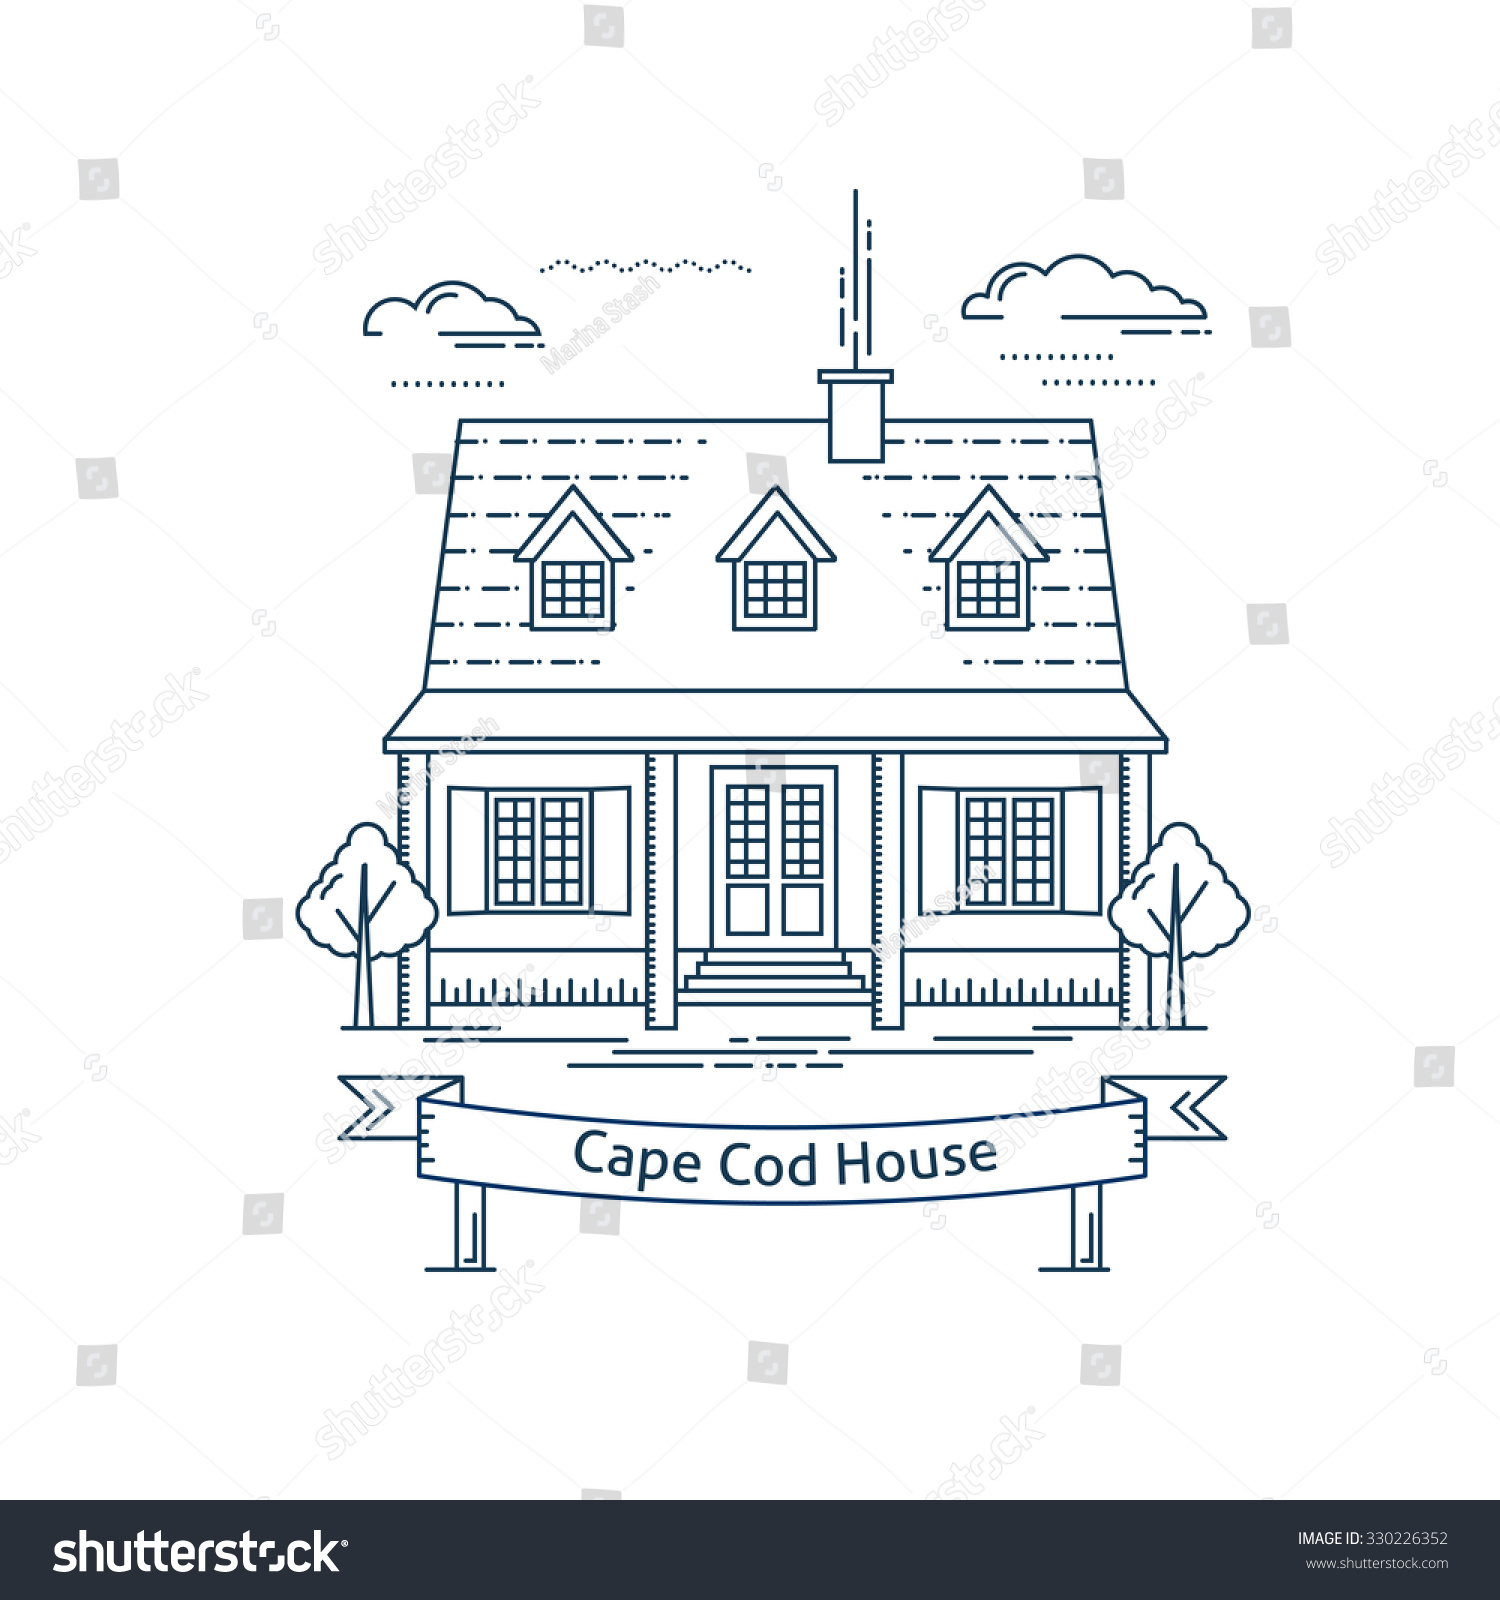 Cape Cod Web Design: Real Estate Market Concept Flat Line Vector Architecture